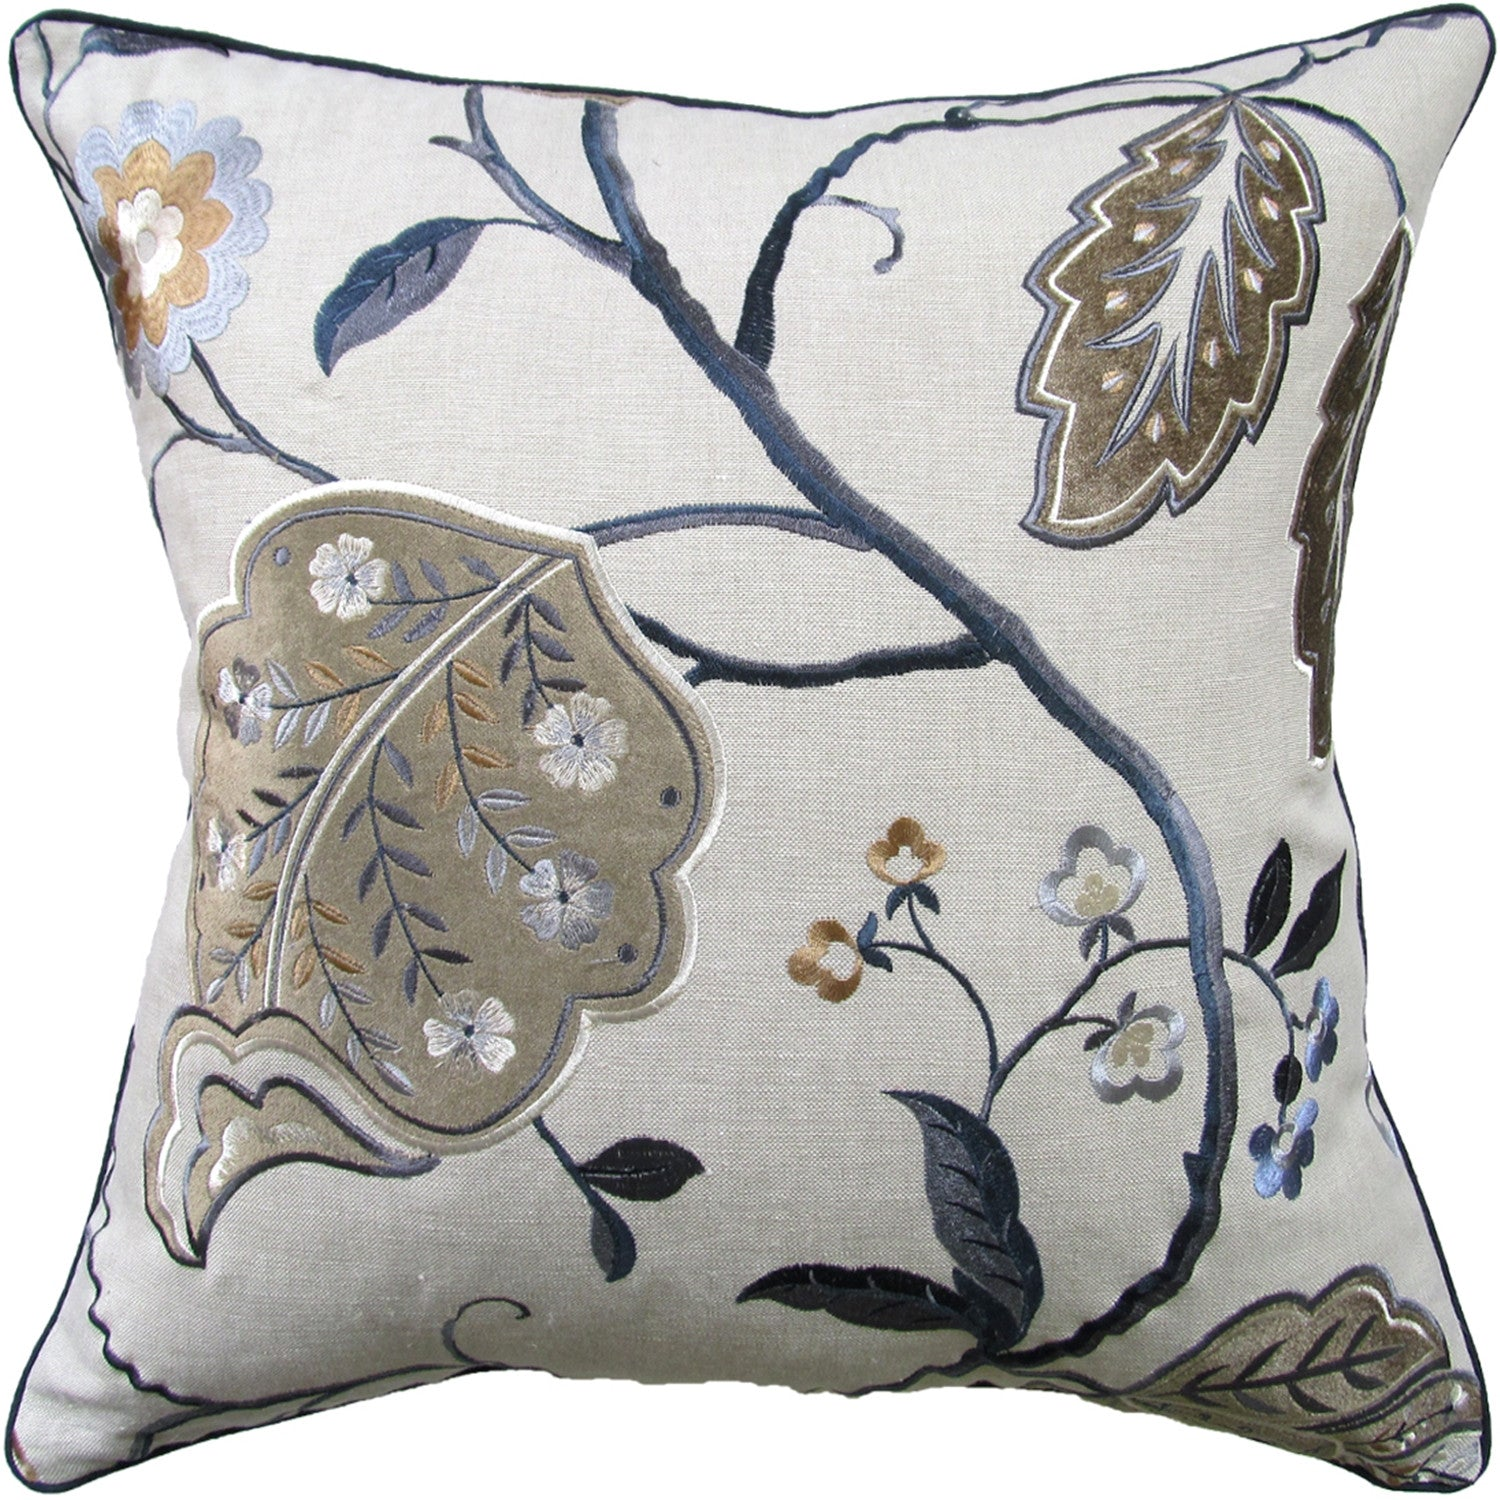 Ryan Studio Cally Pillow in Indigo